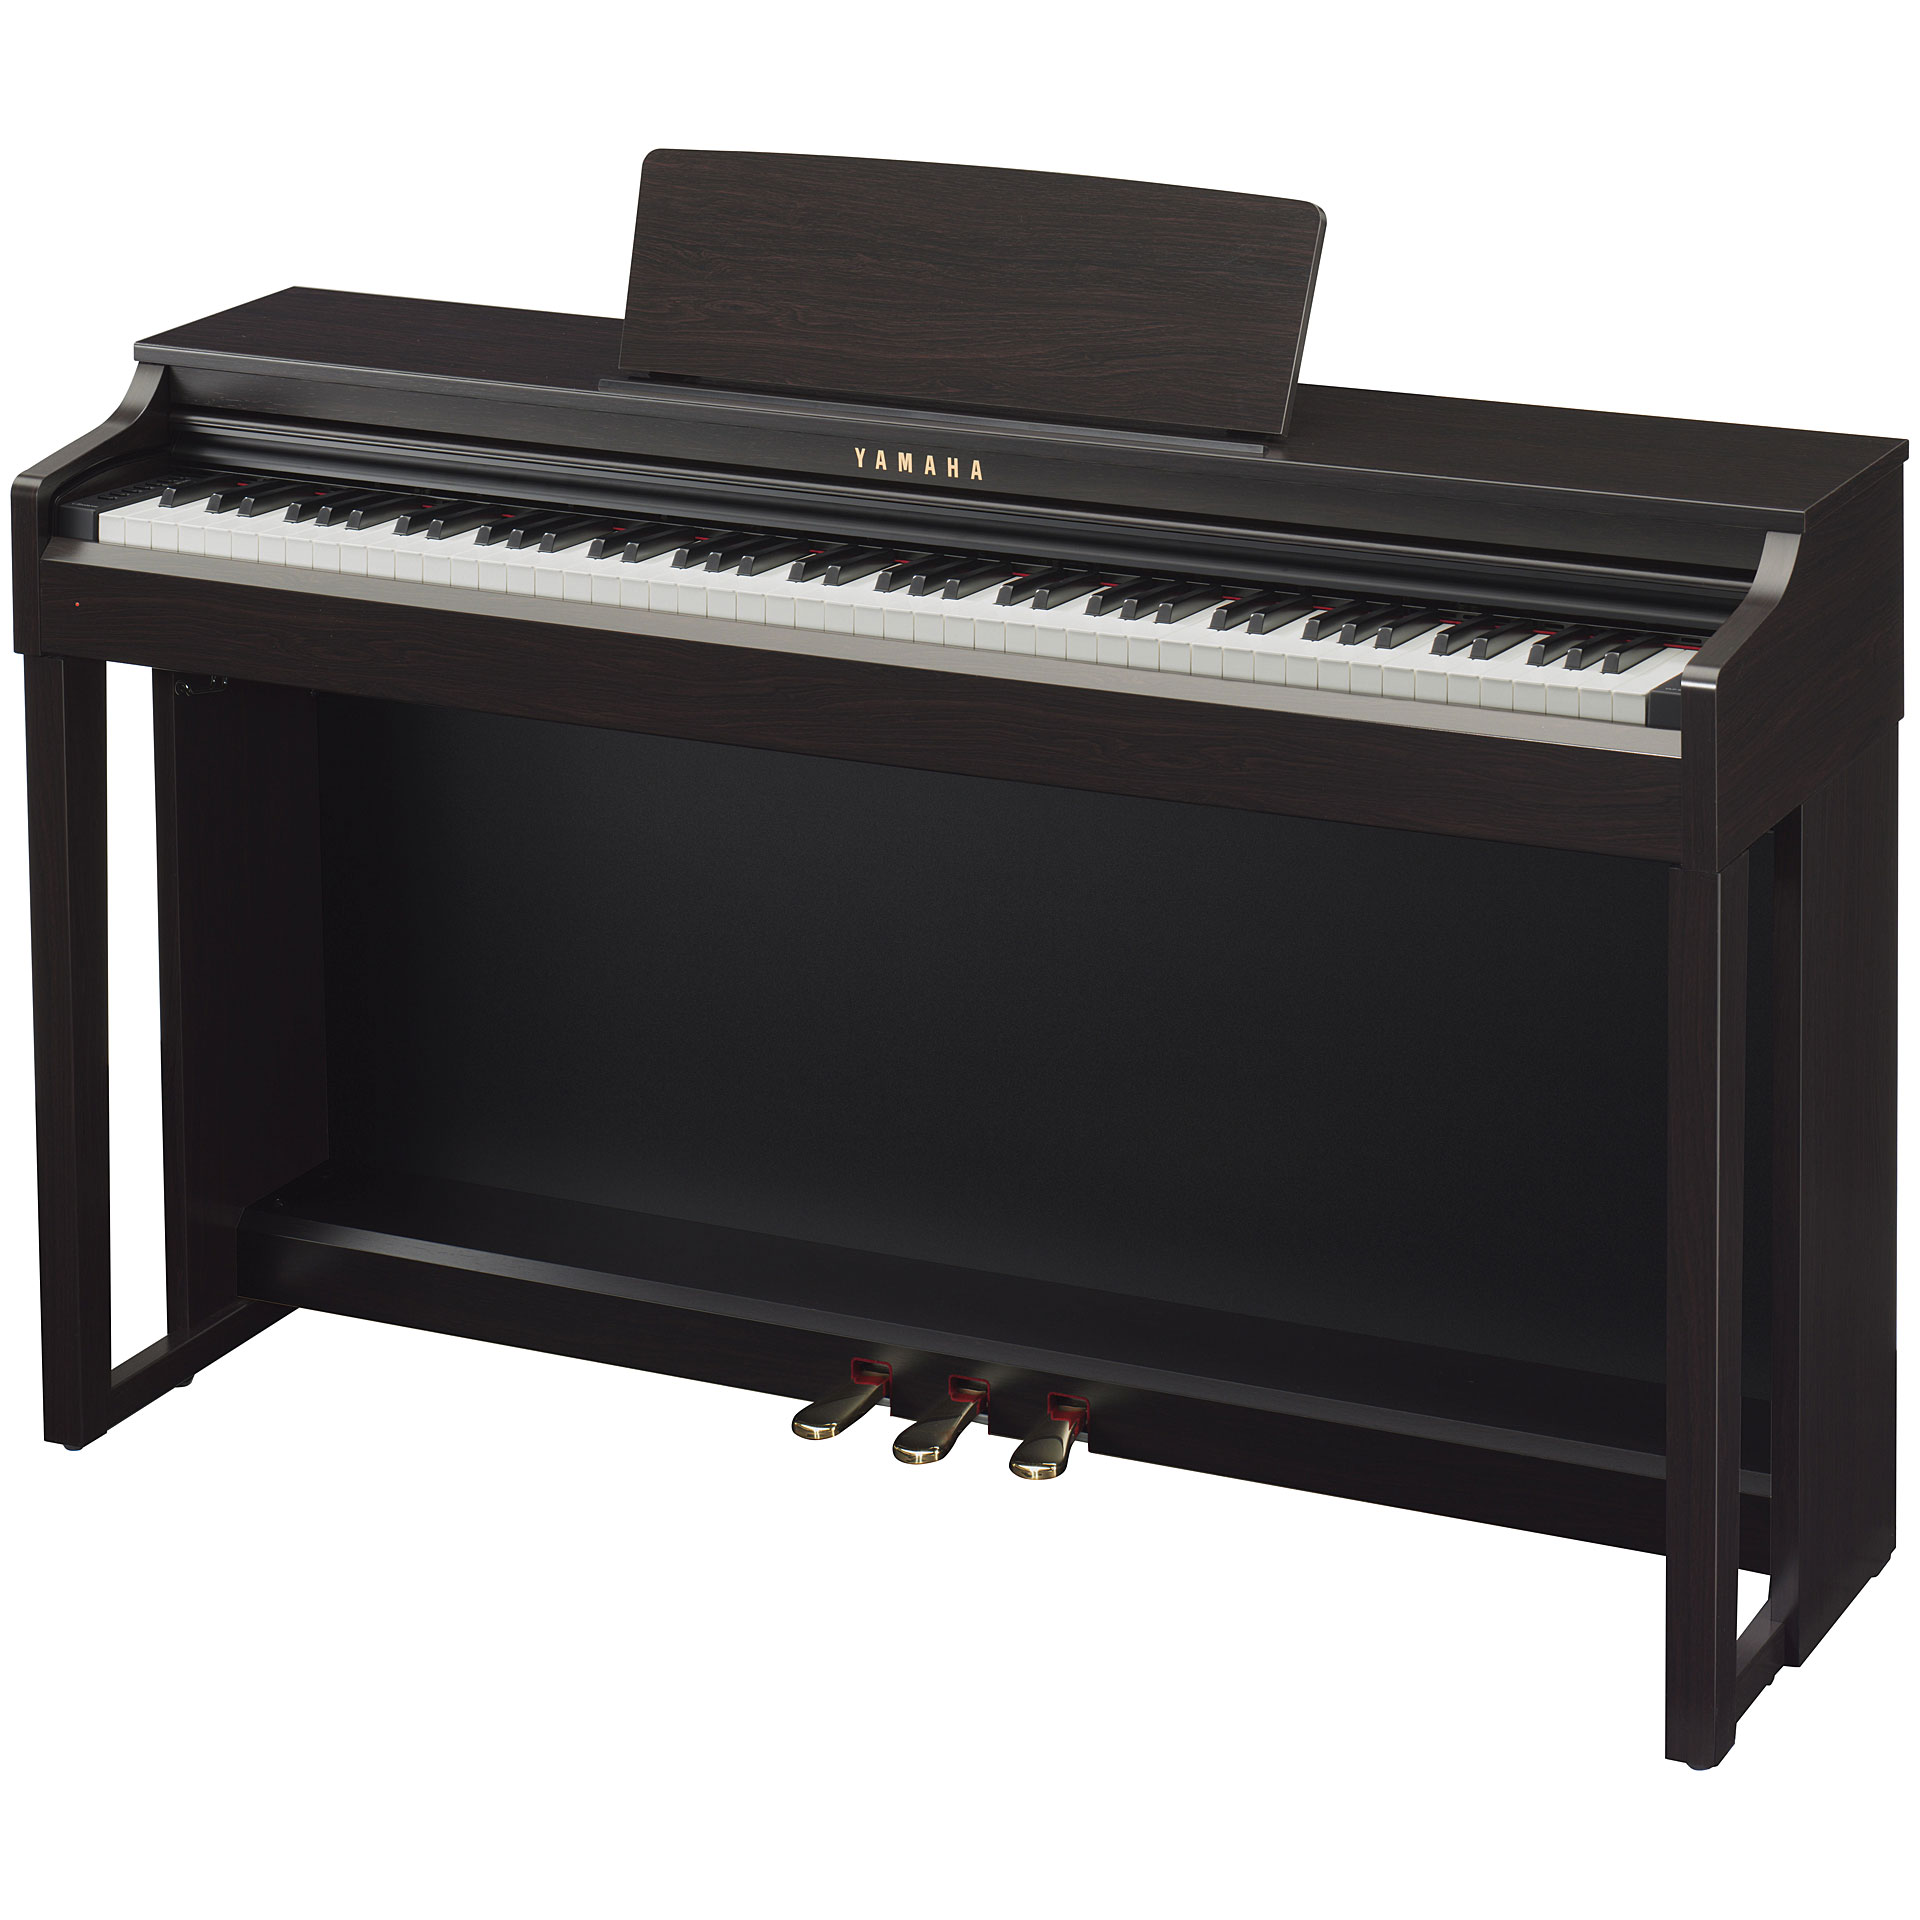 yamaha clavinova clp 525r piano digital. Black Bedroom Furniture Sets. Home Design Ideas